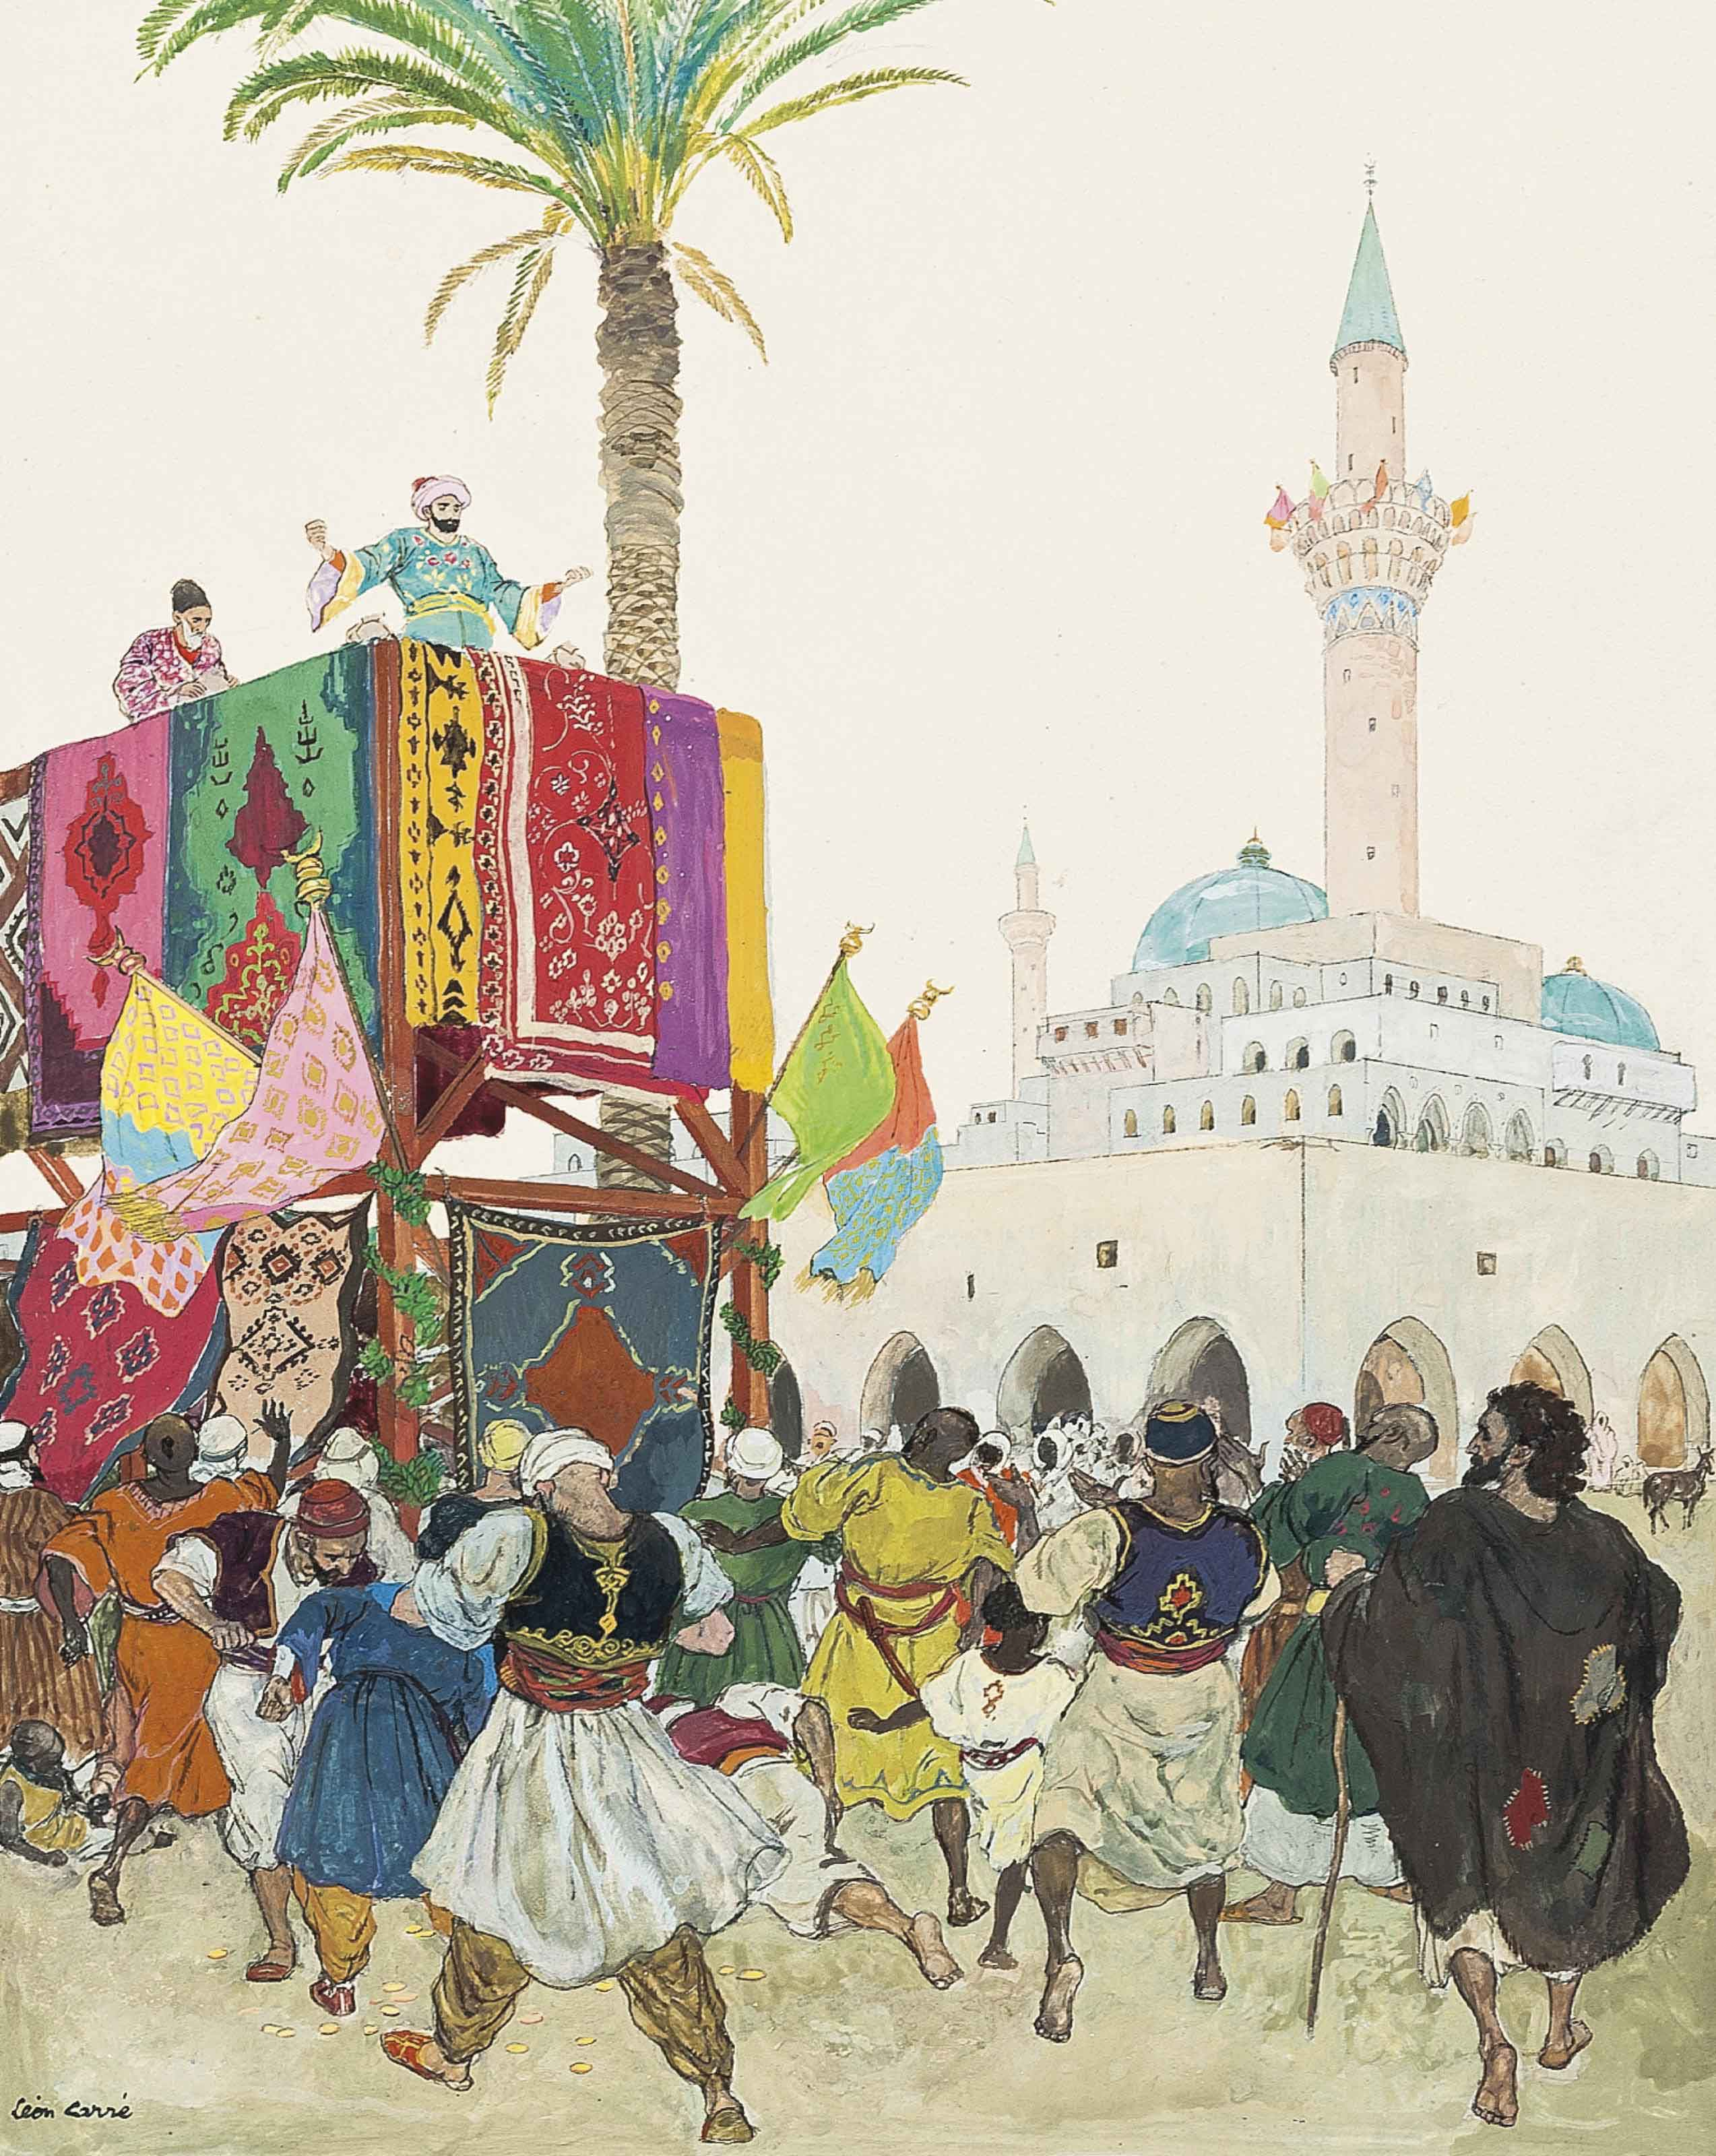 Marouf brought his bags full of gold, from 'The Story of the Disordered Cake and the Calamitous Spouse'